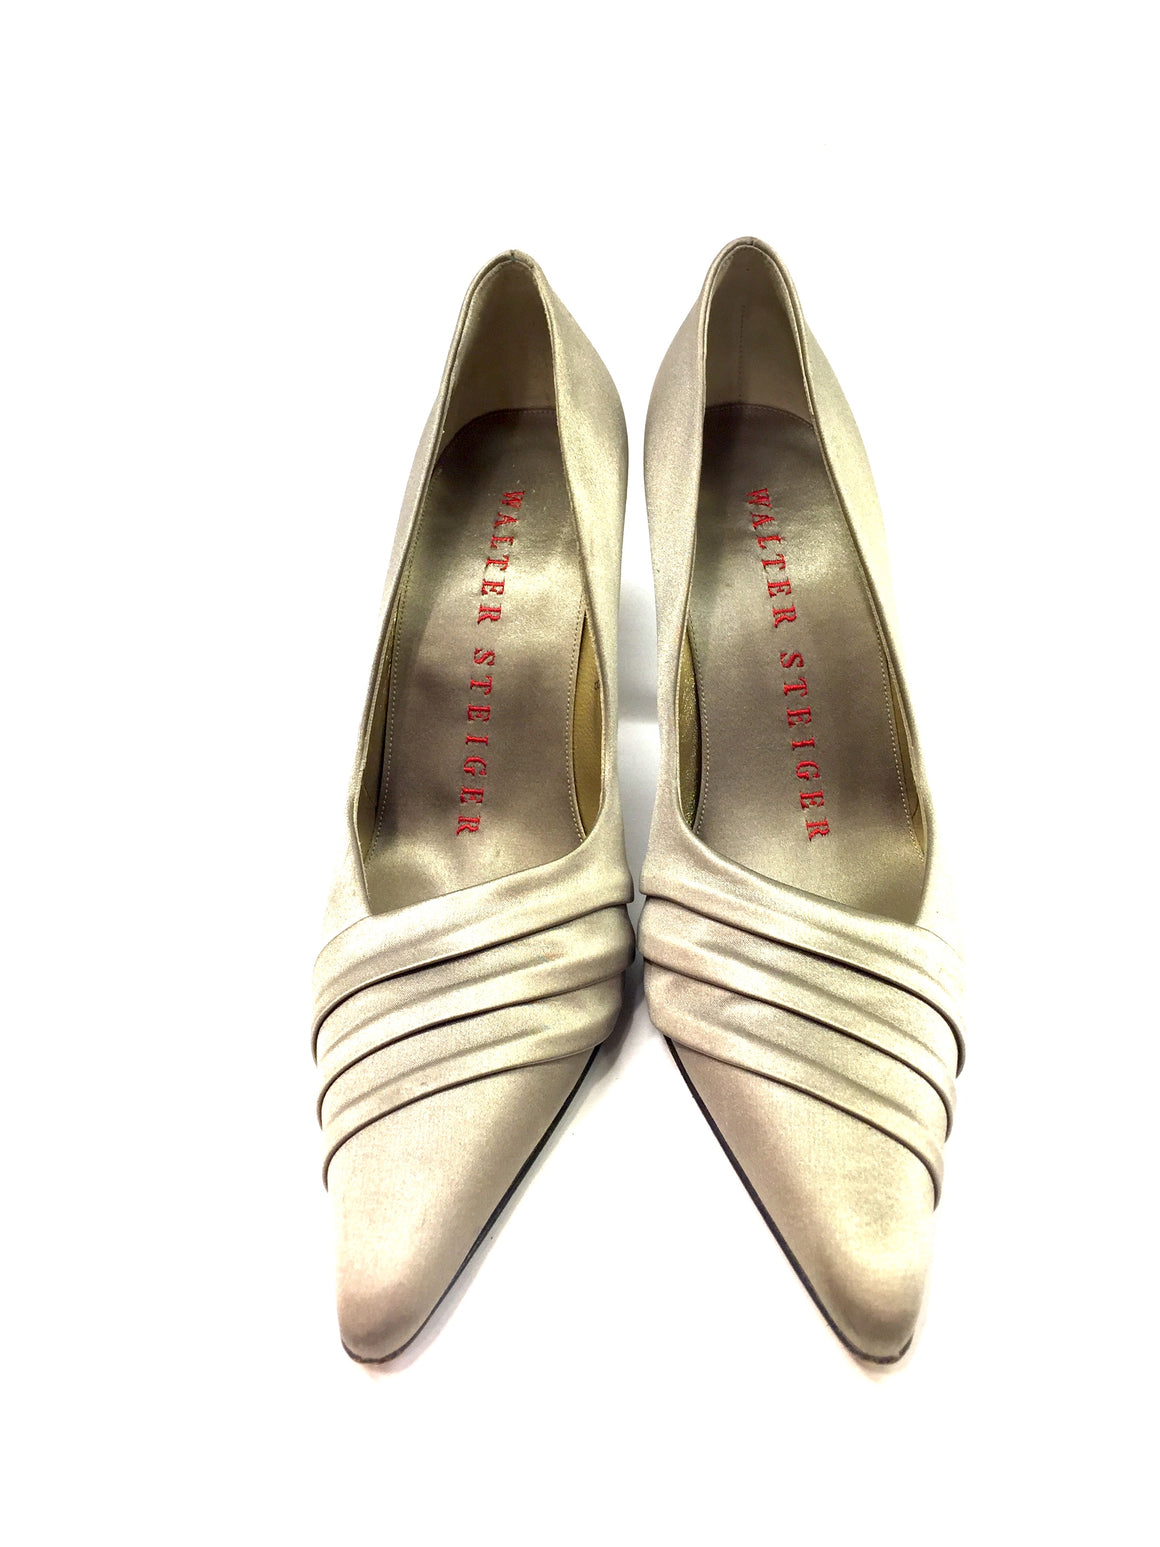 WALTER STEIGER Light-Gold Silk Pointed-Toe Hi-Heel Pumps Shoes Sz8b